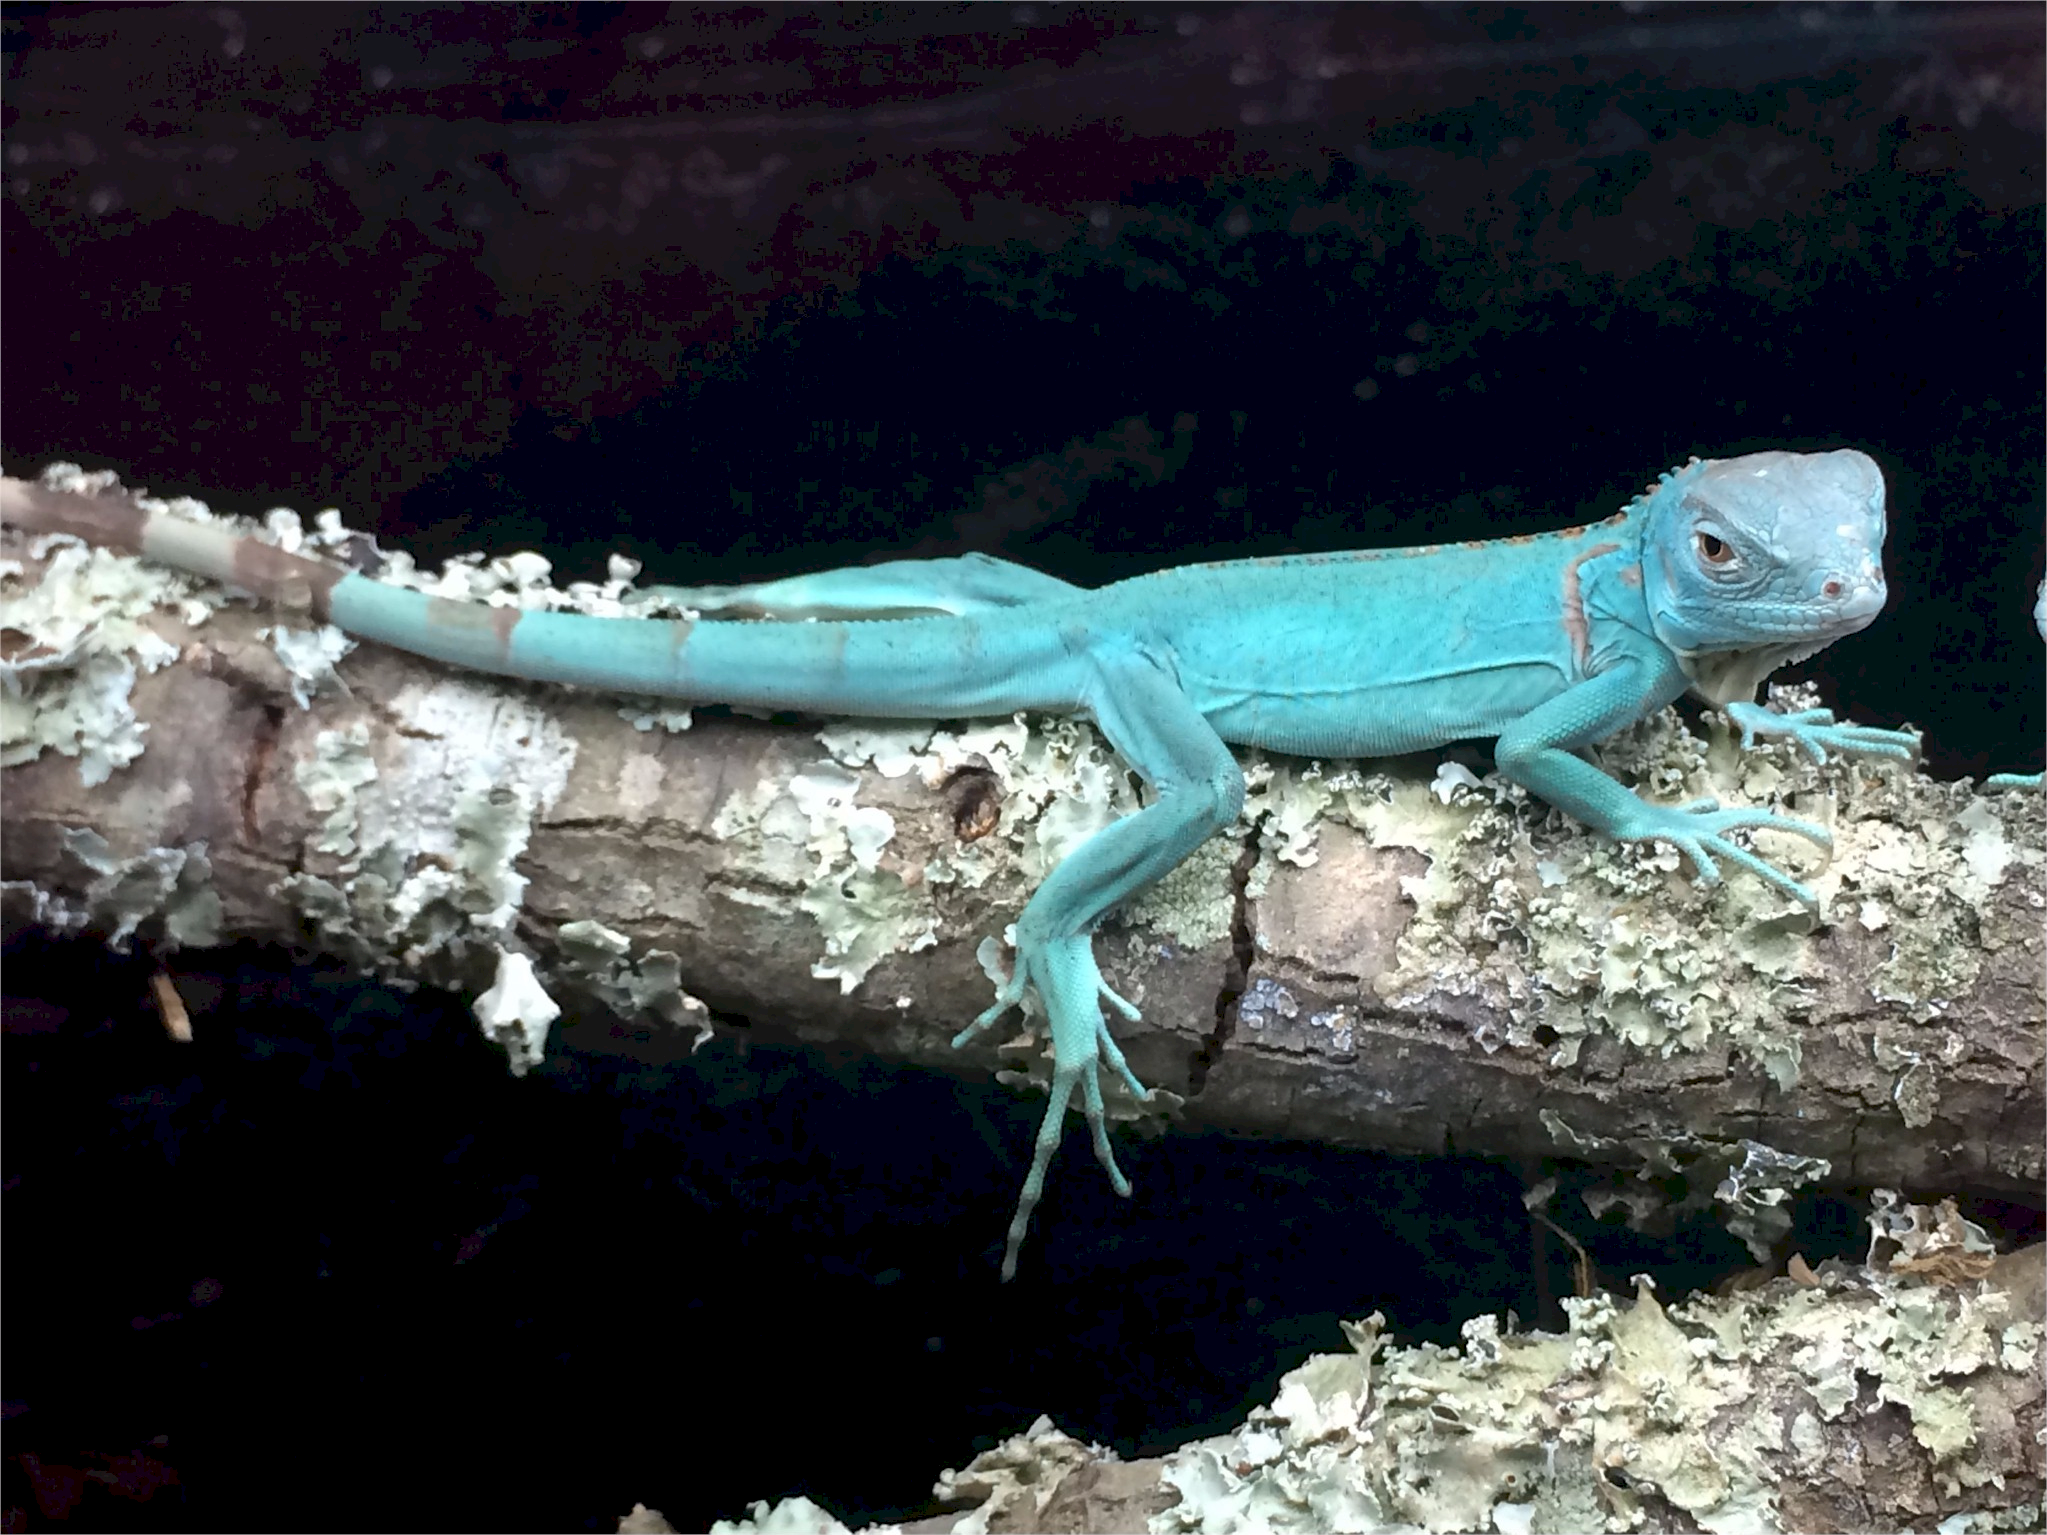 Looking for a new family pet, like a blue iguana? Hundreds of reptiles, amphibians, spiders, small exotic animals and more will be at Repticon Baltimore on Sept. 29-30 at the Maryland State Fairgrounds in Timonium. Vendors, breeders and educators will be at the family-friendly expo, which will feature seminars, merchandise and live interactions with potential pets. The expo runs from 10 a.m. to 5 p.m. Saturday and 10 a.m. to 4 p.m. Sunday. Tickets are $10 for adults, $5 for kids 5-12 and under 5 are free. Visit repticon.com/maryland/baltimore for more.